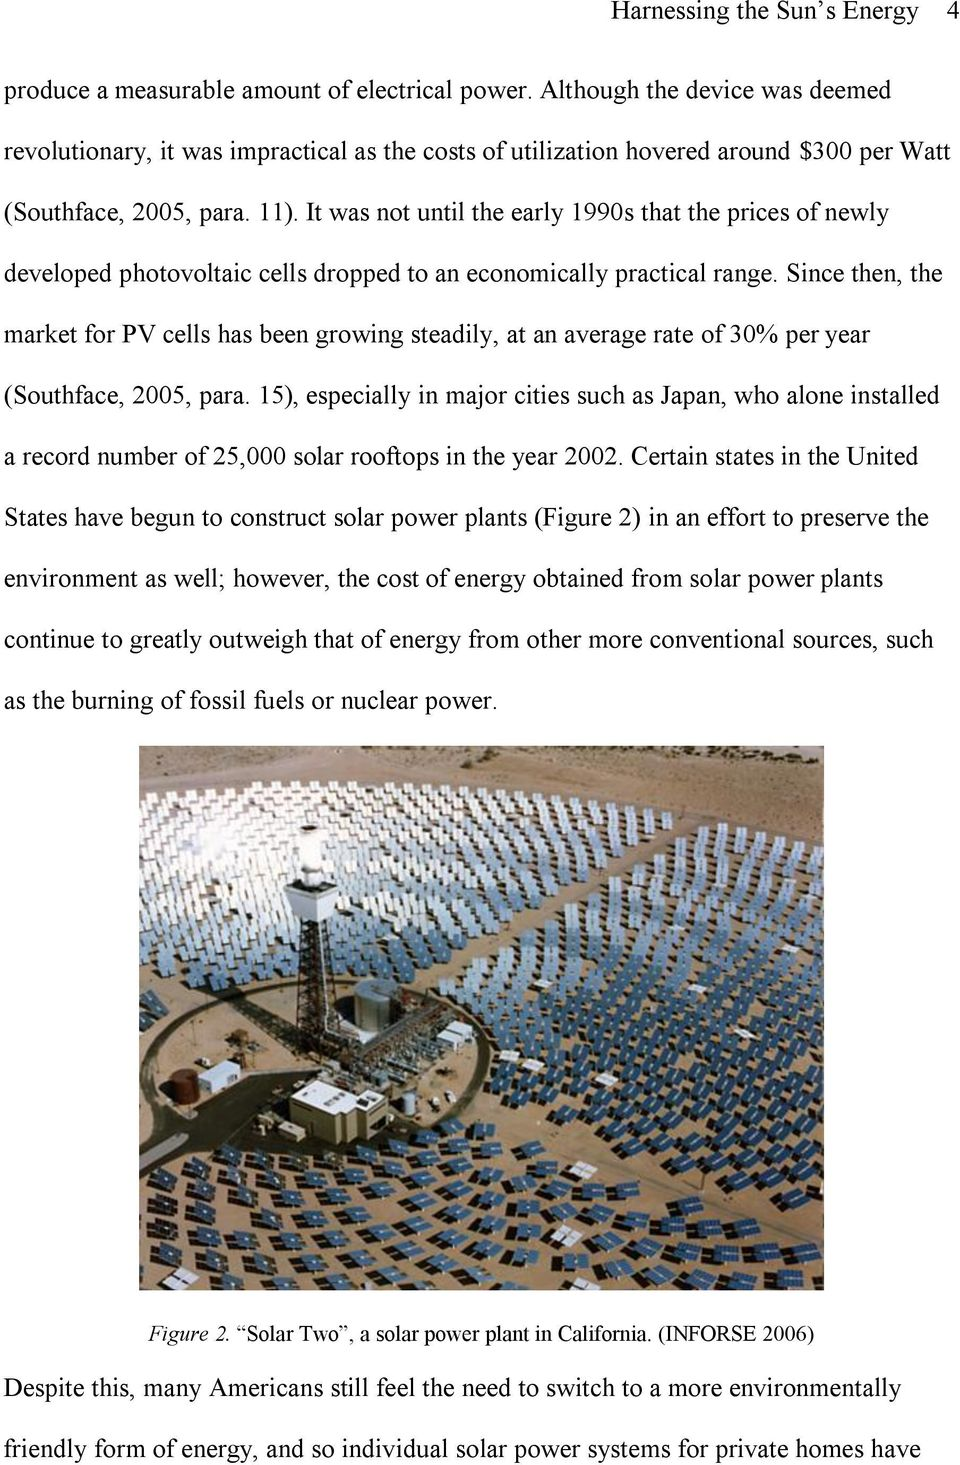 It was not until the early 1990s that the prices of newly developed photovoltaic cells dropped to an economically practical range.